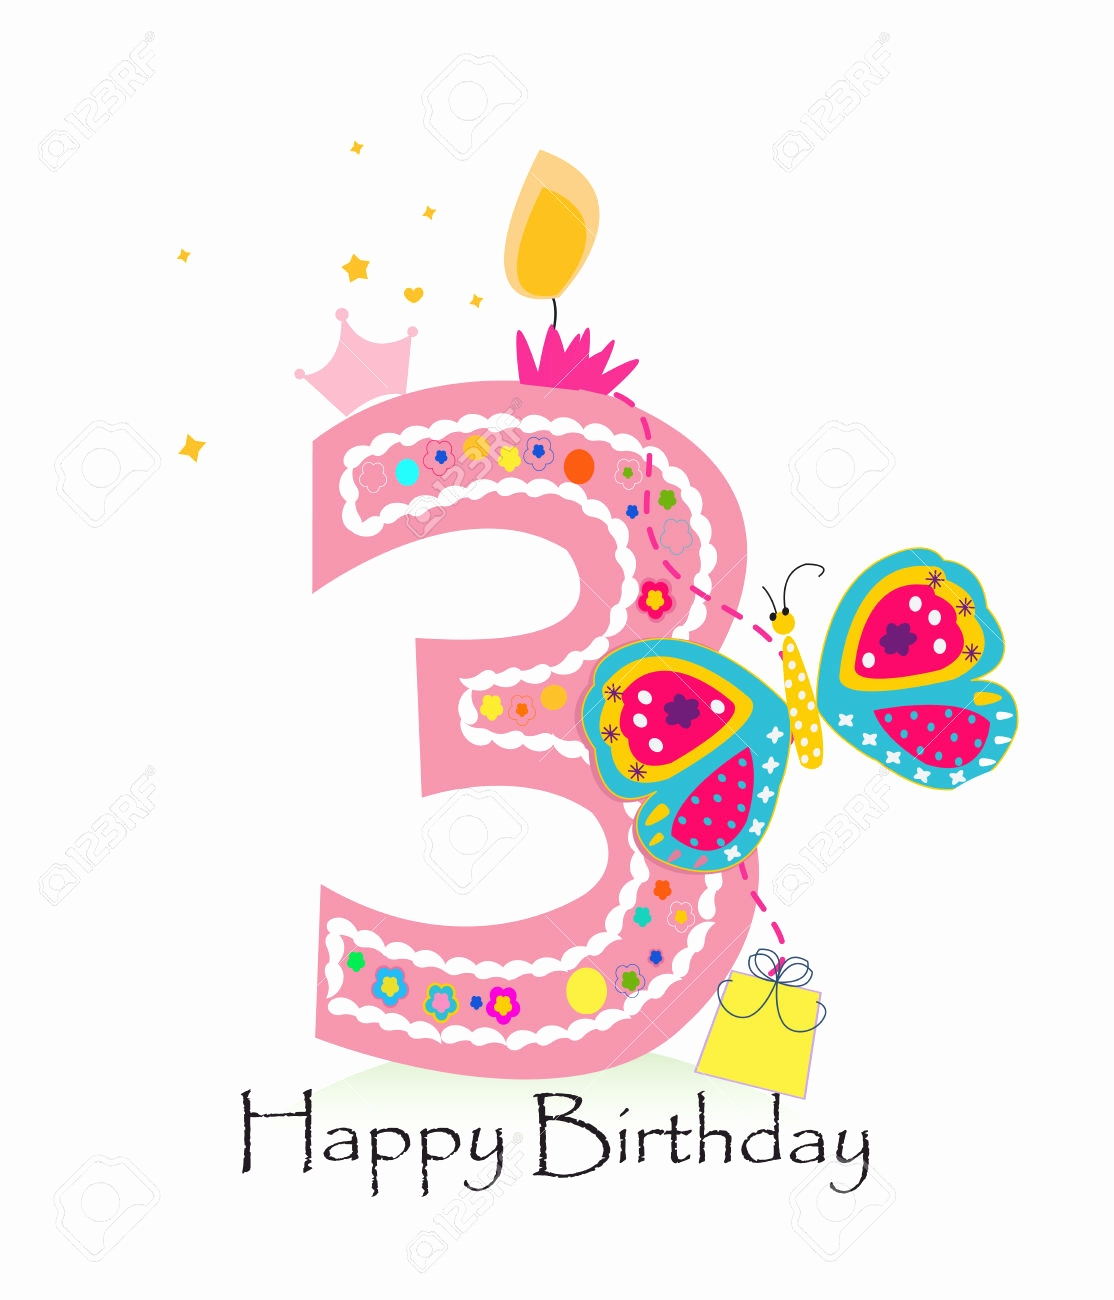 3rd birthday clipart ; third-birthday-card-lovely-candle-clipart-3rd-birthday-pencil-and-in-color-candle-clipart-of-third-birthday-card